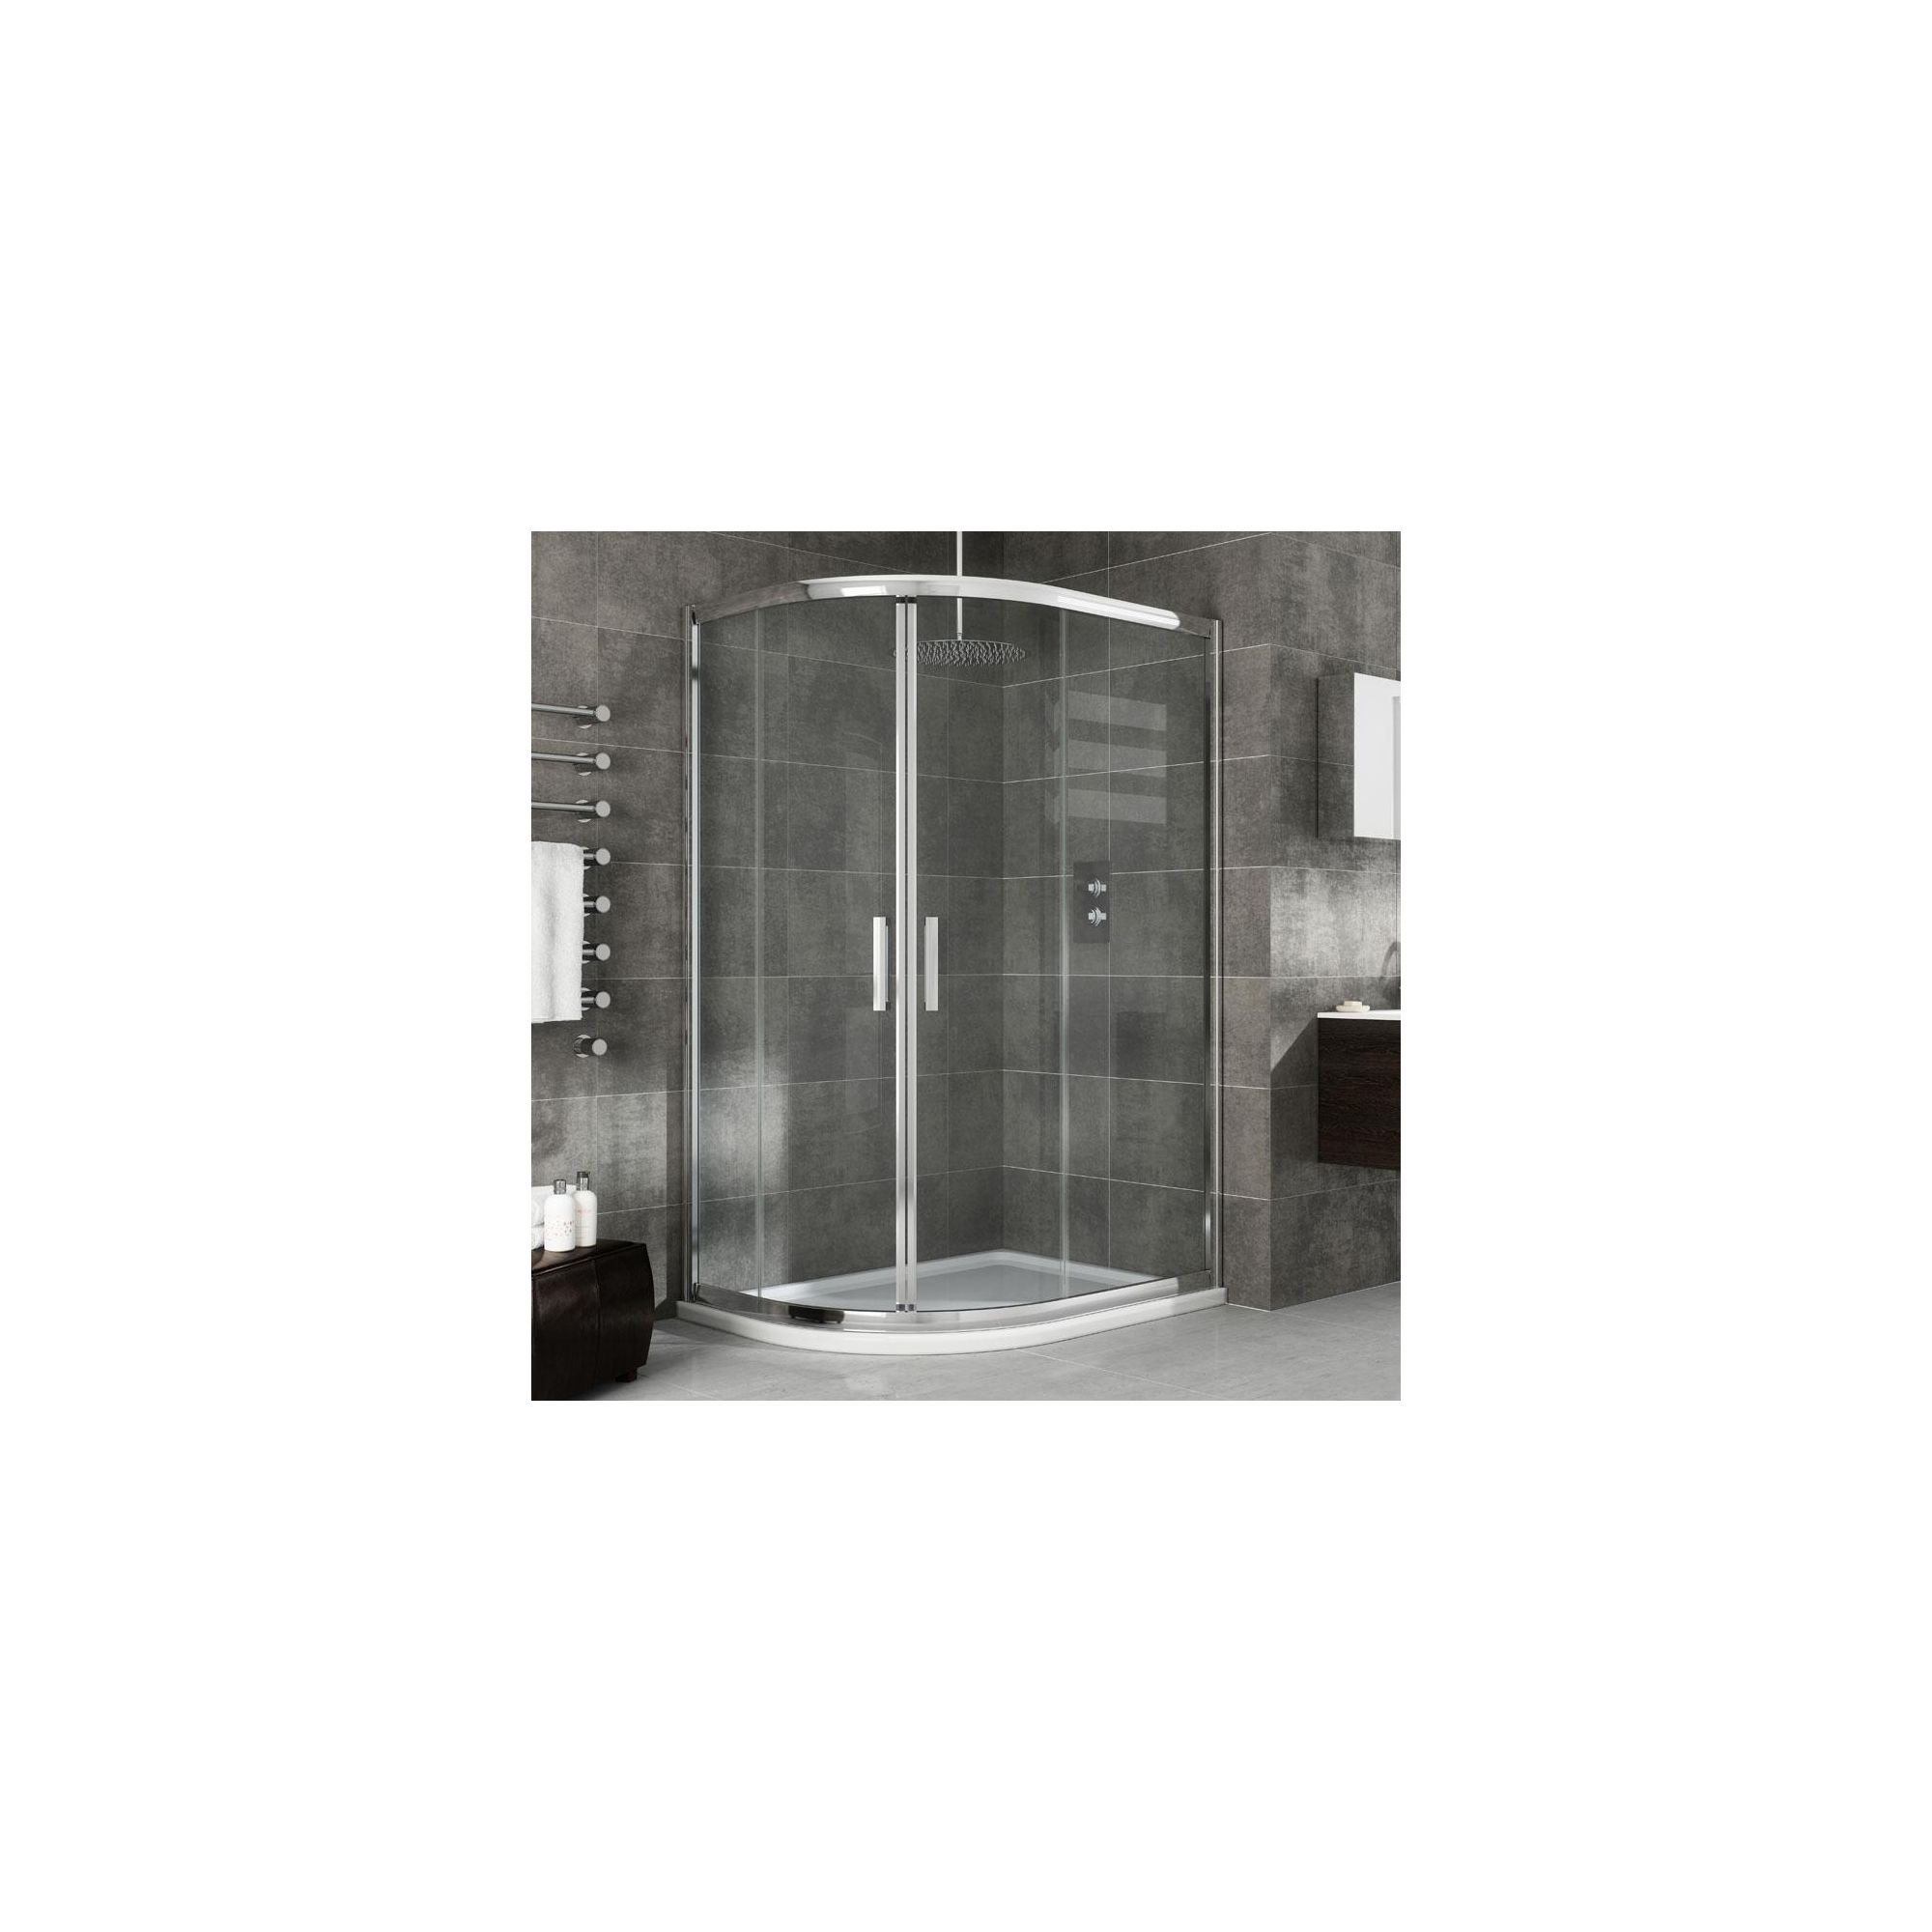 Elemis Eternity Offset Quadrant Shower Enclosure, 1200mm x 800mm, 8mm Glass, Low Profile Tray, Right Handed at Tesco Direct